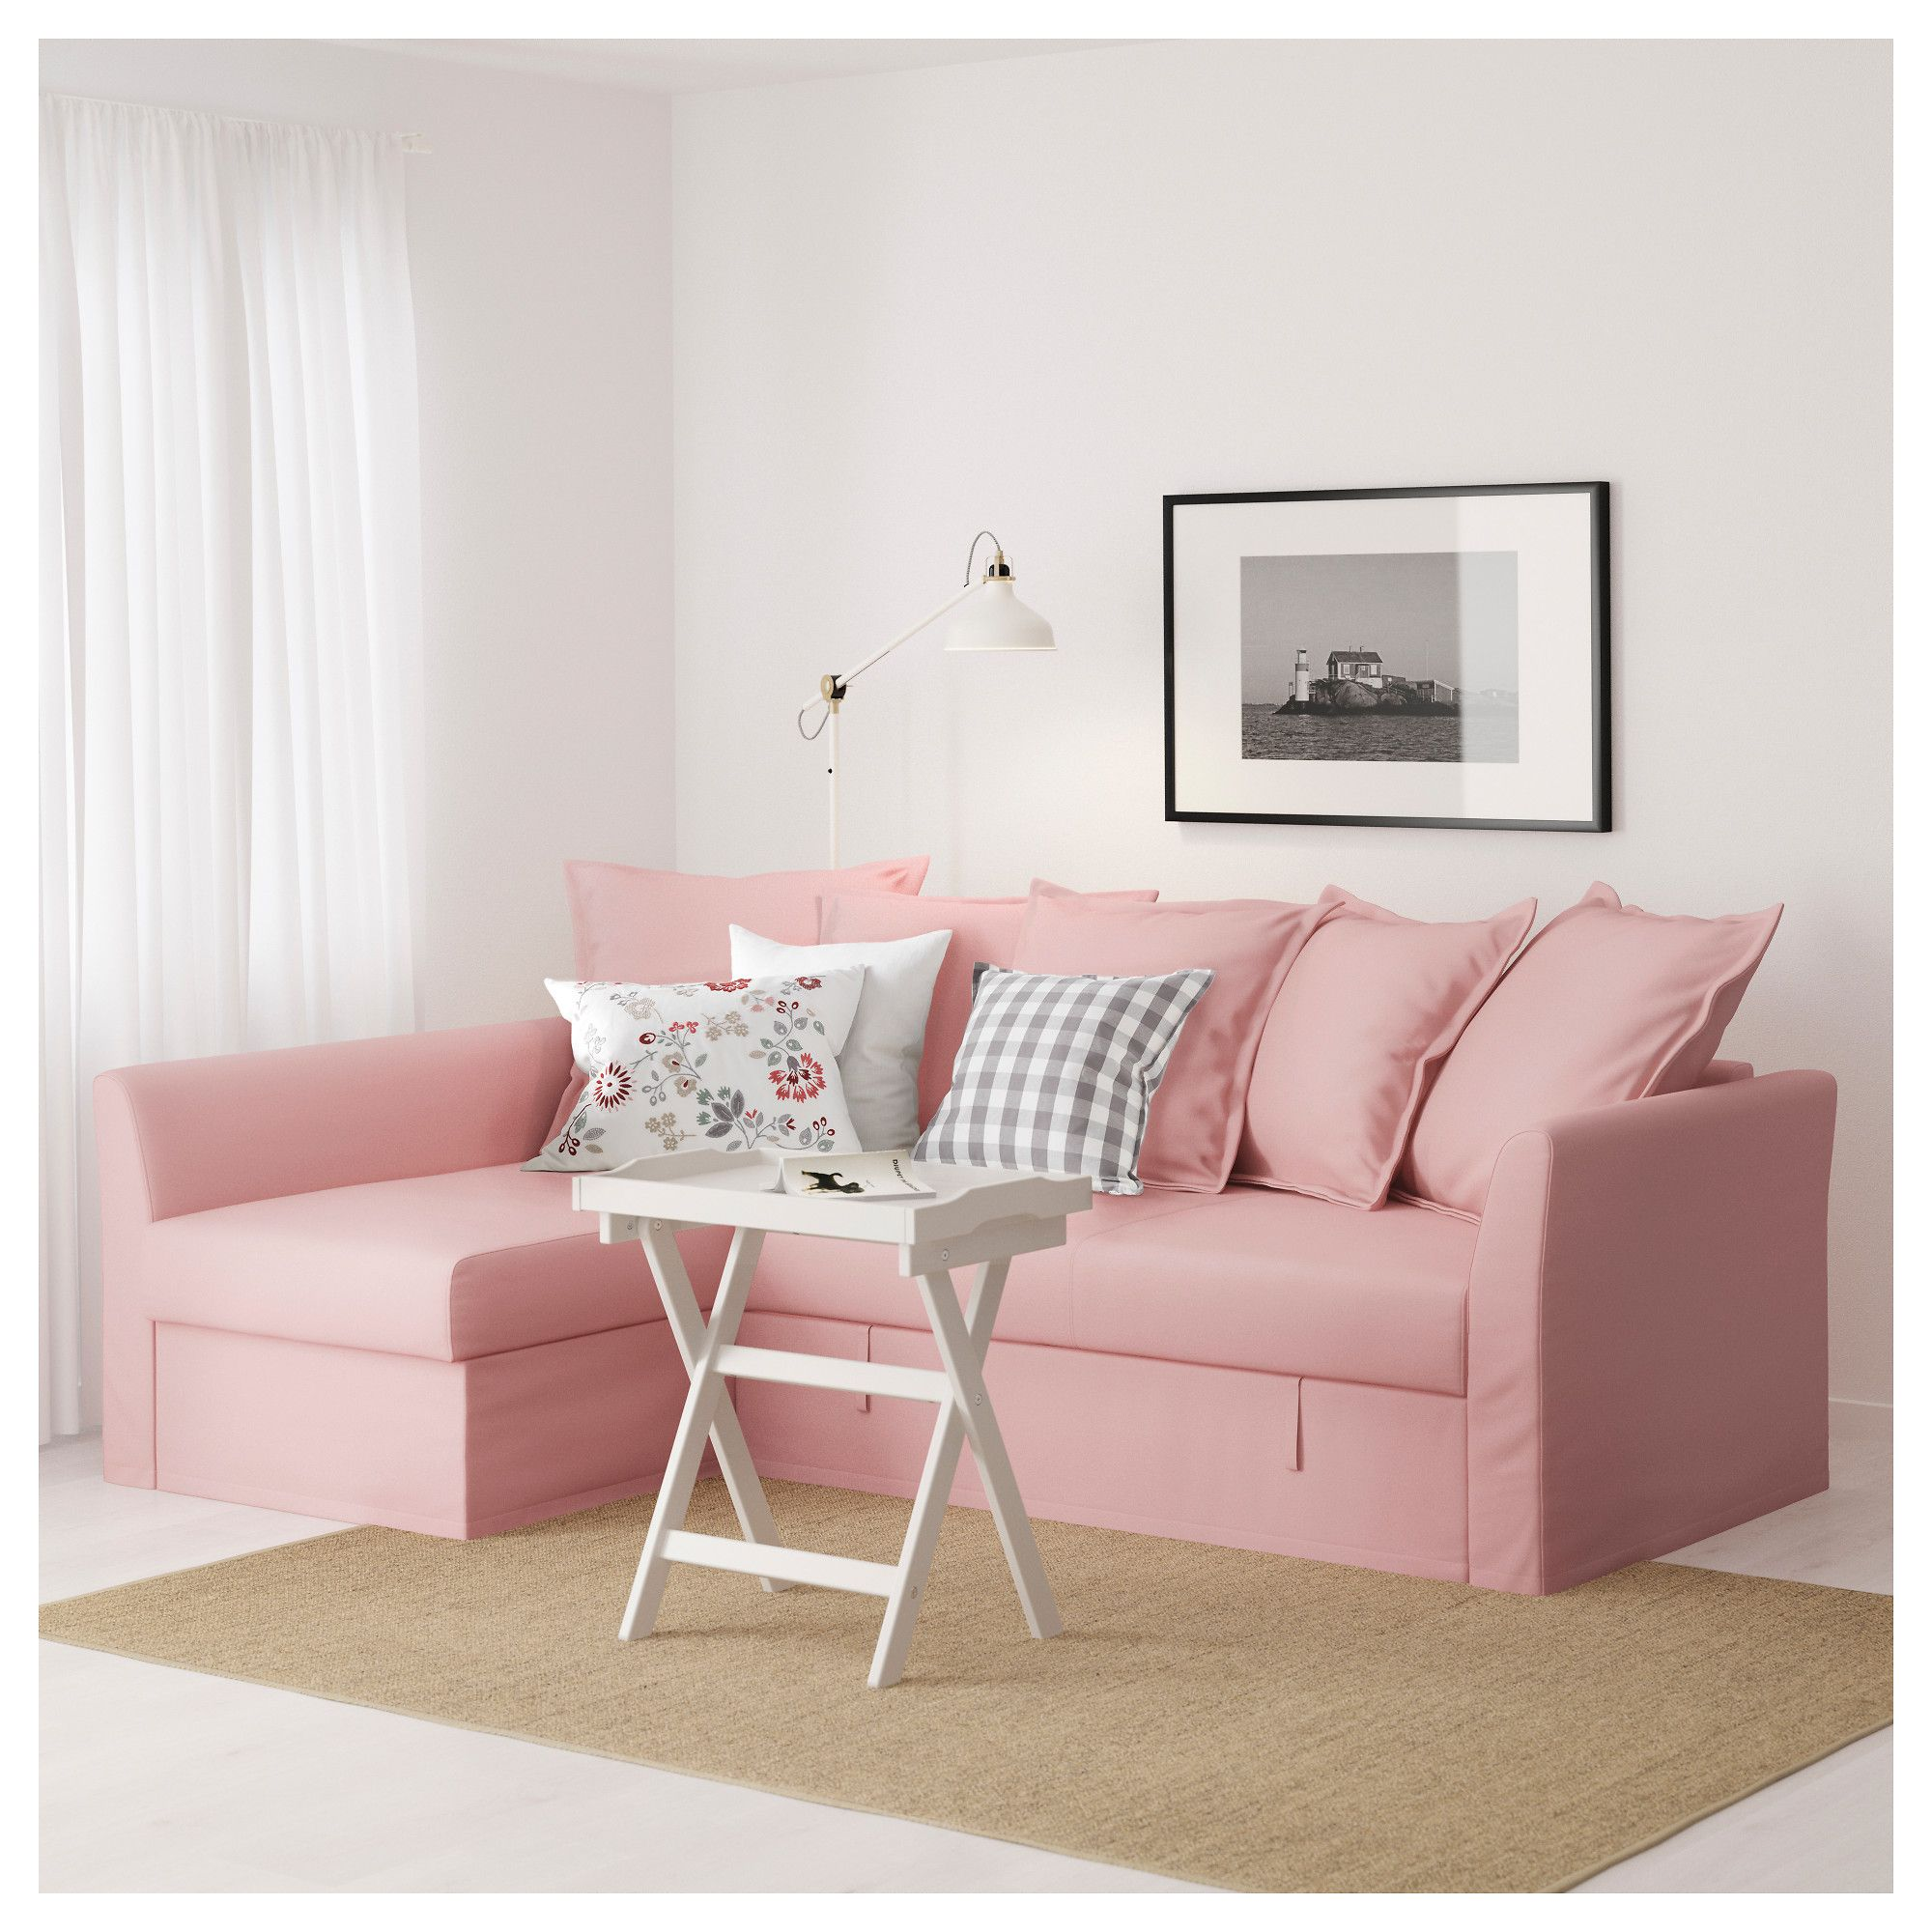 Corner Sofa Bed Under 300: Pink Sofa Ikea Diy Success Dyeing An Ikea Sofa A New Color